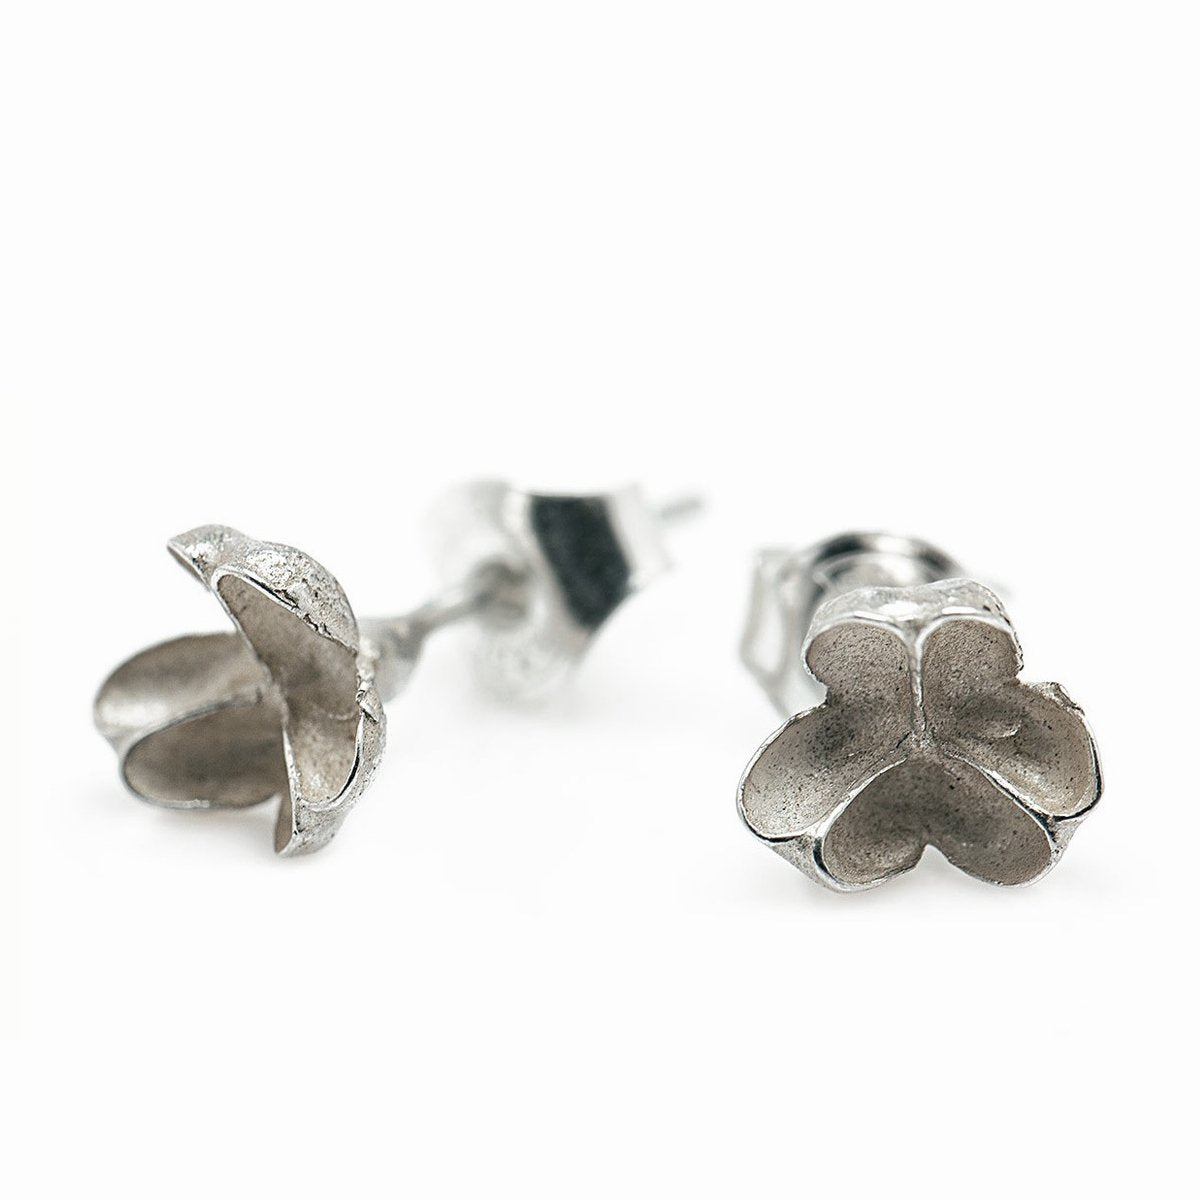 The seed capsule studs - Silver